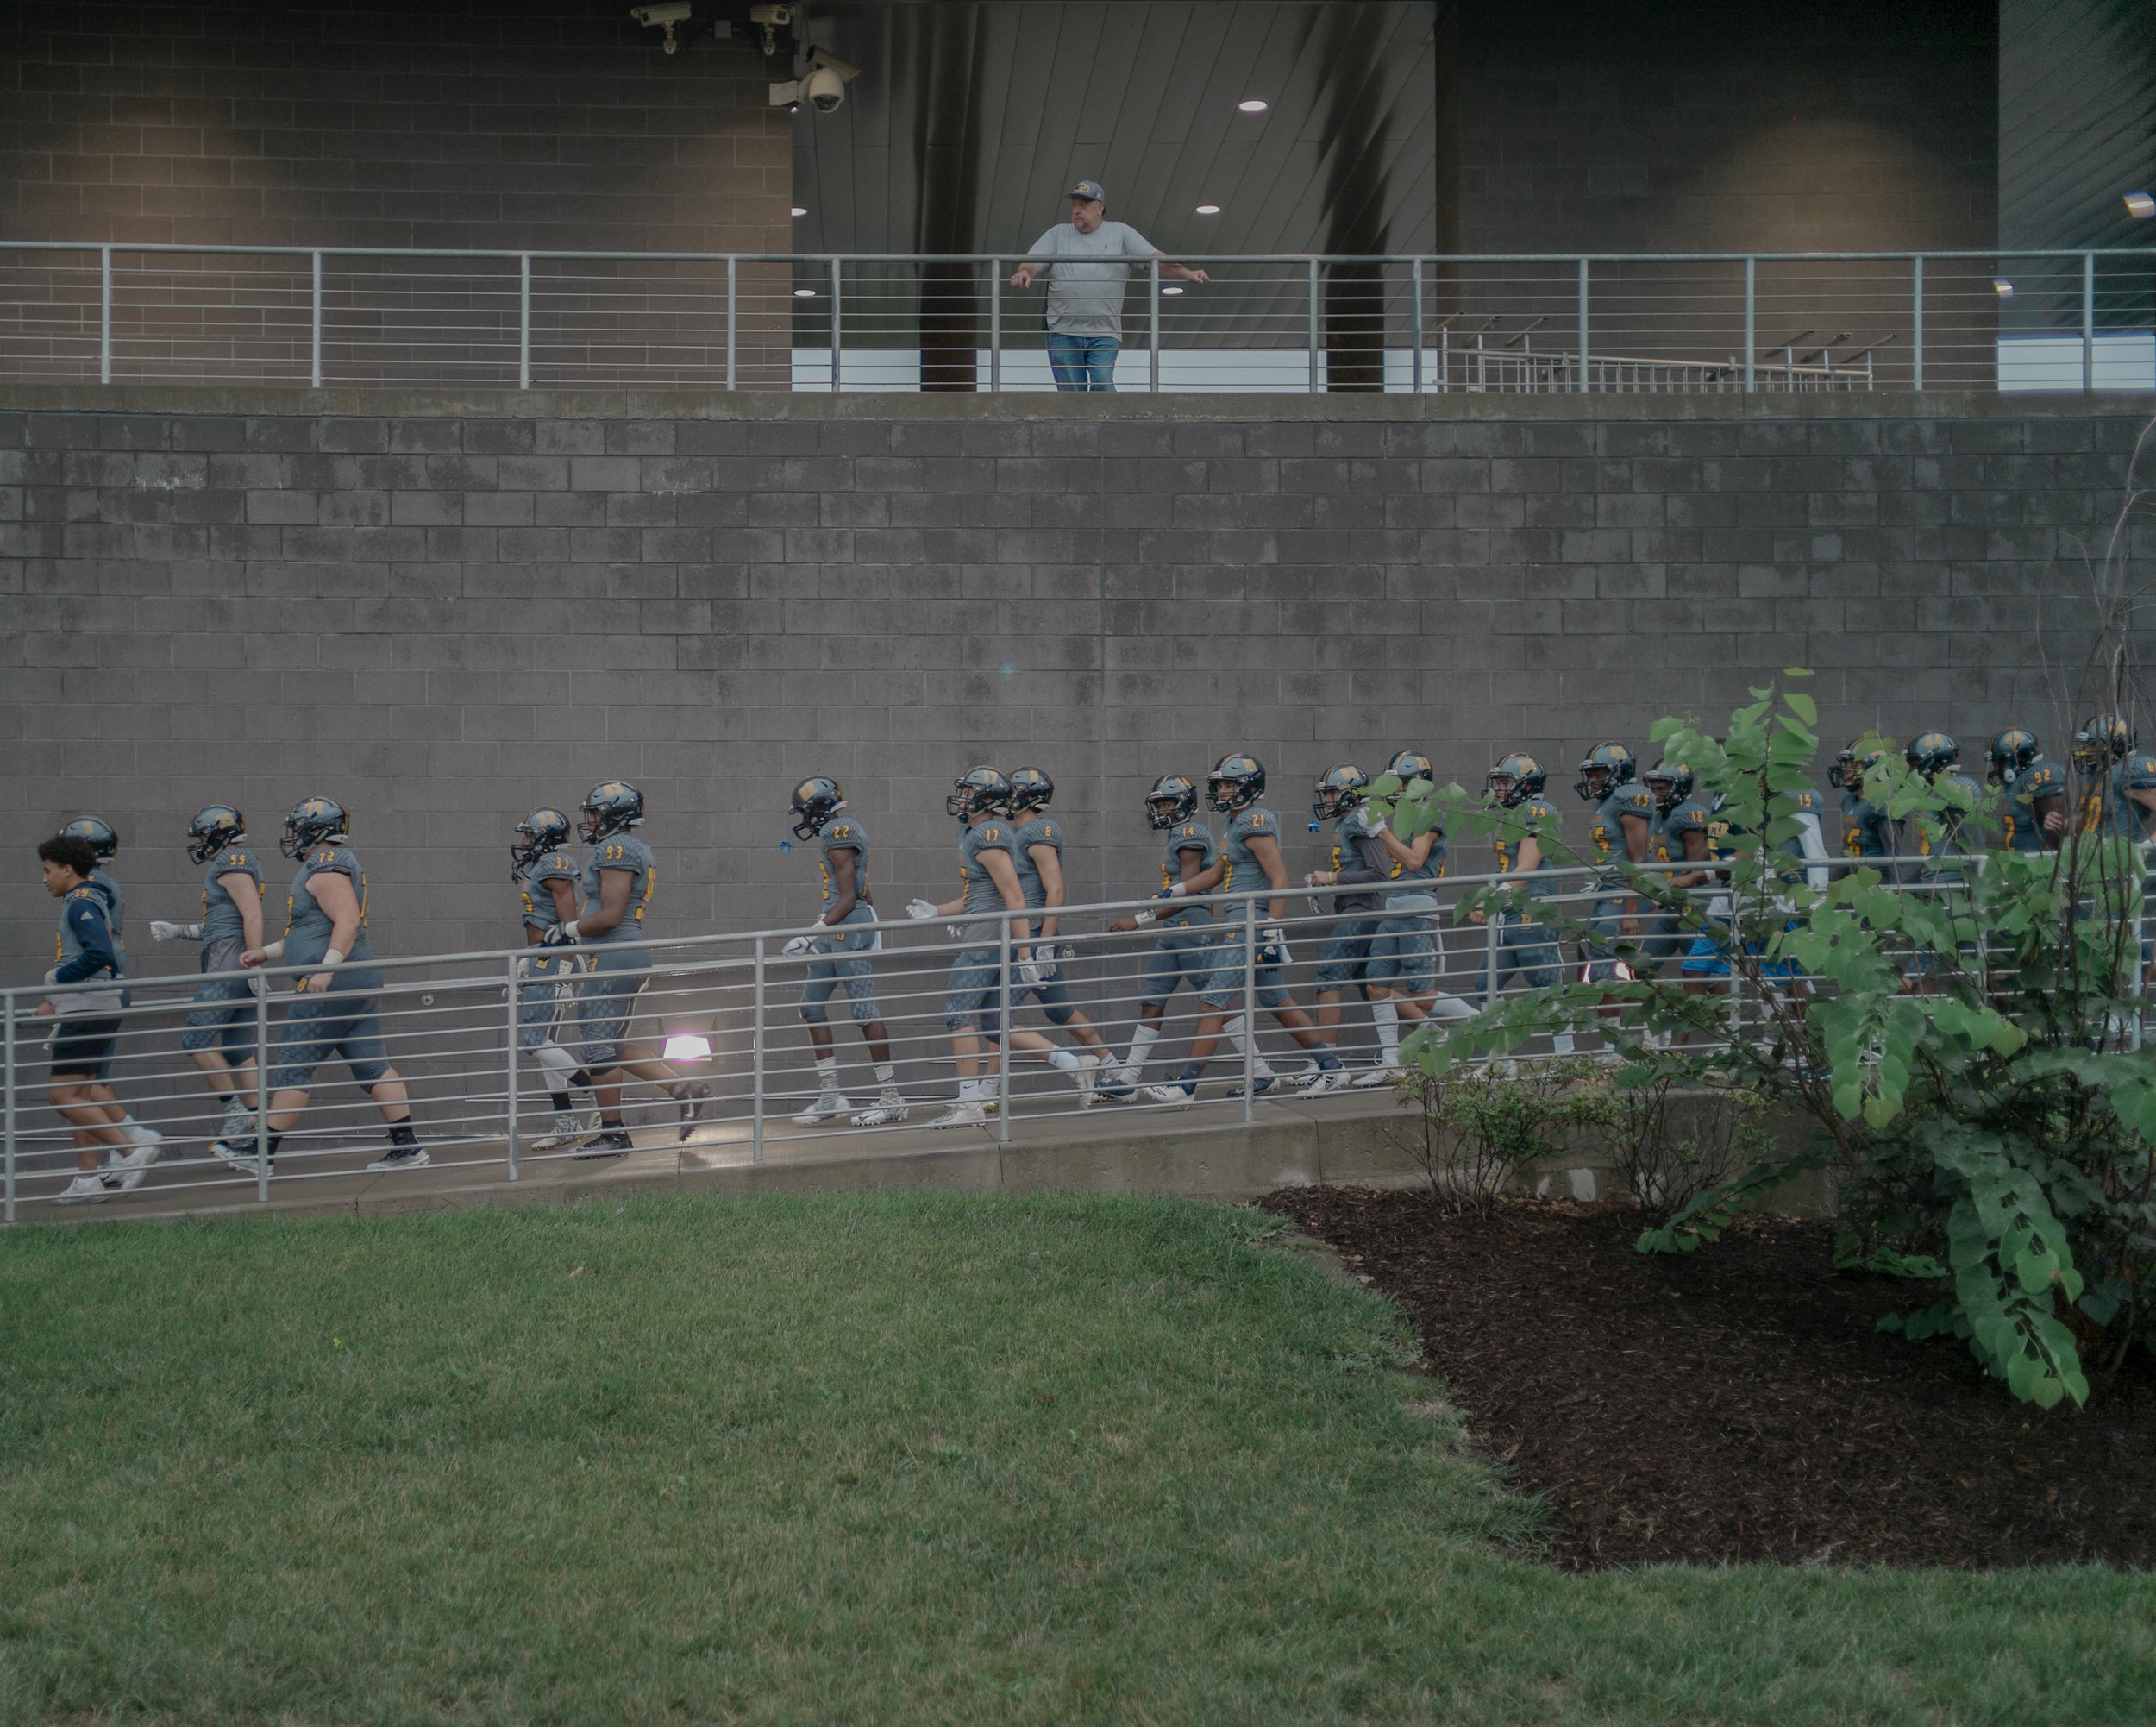 """Muriel Battle High School's football team walks into its stadium to face rival Rock Bridge High School on Friday at Battle. The team entered as Archie Eversole's """"We Ready"""" blasted through the stadium's speakers."""